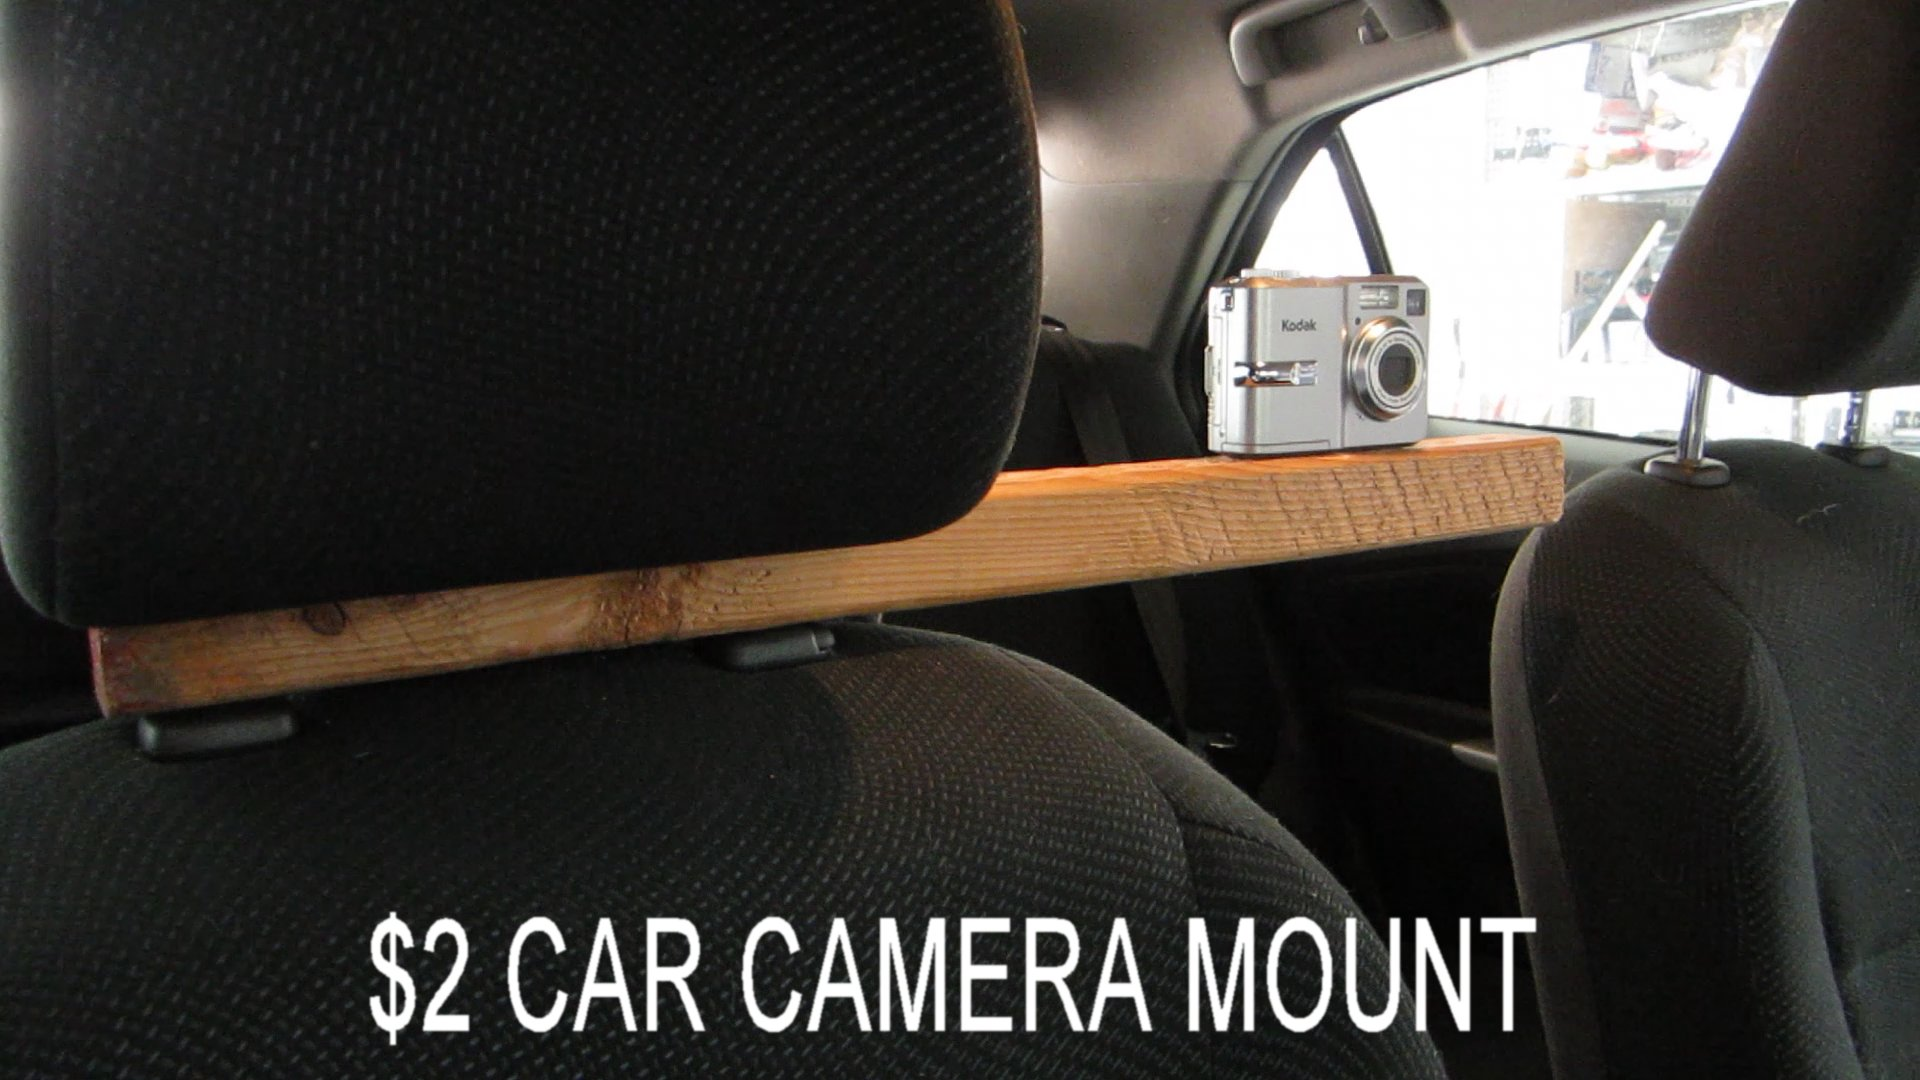 Picture of Simple In-Car Camera Mount for Less Than $2